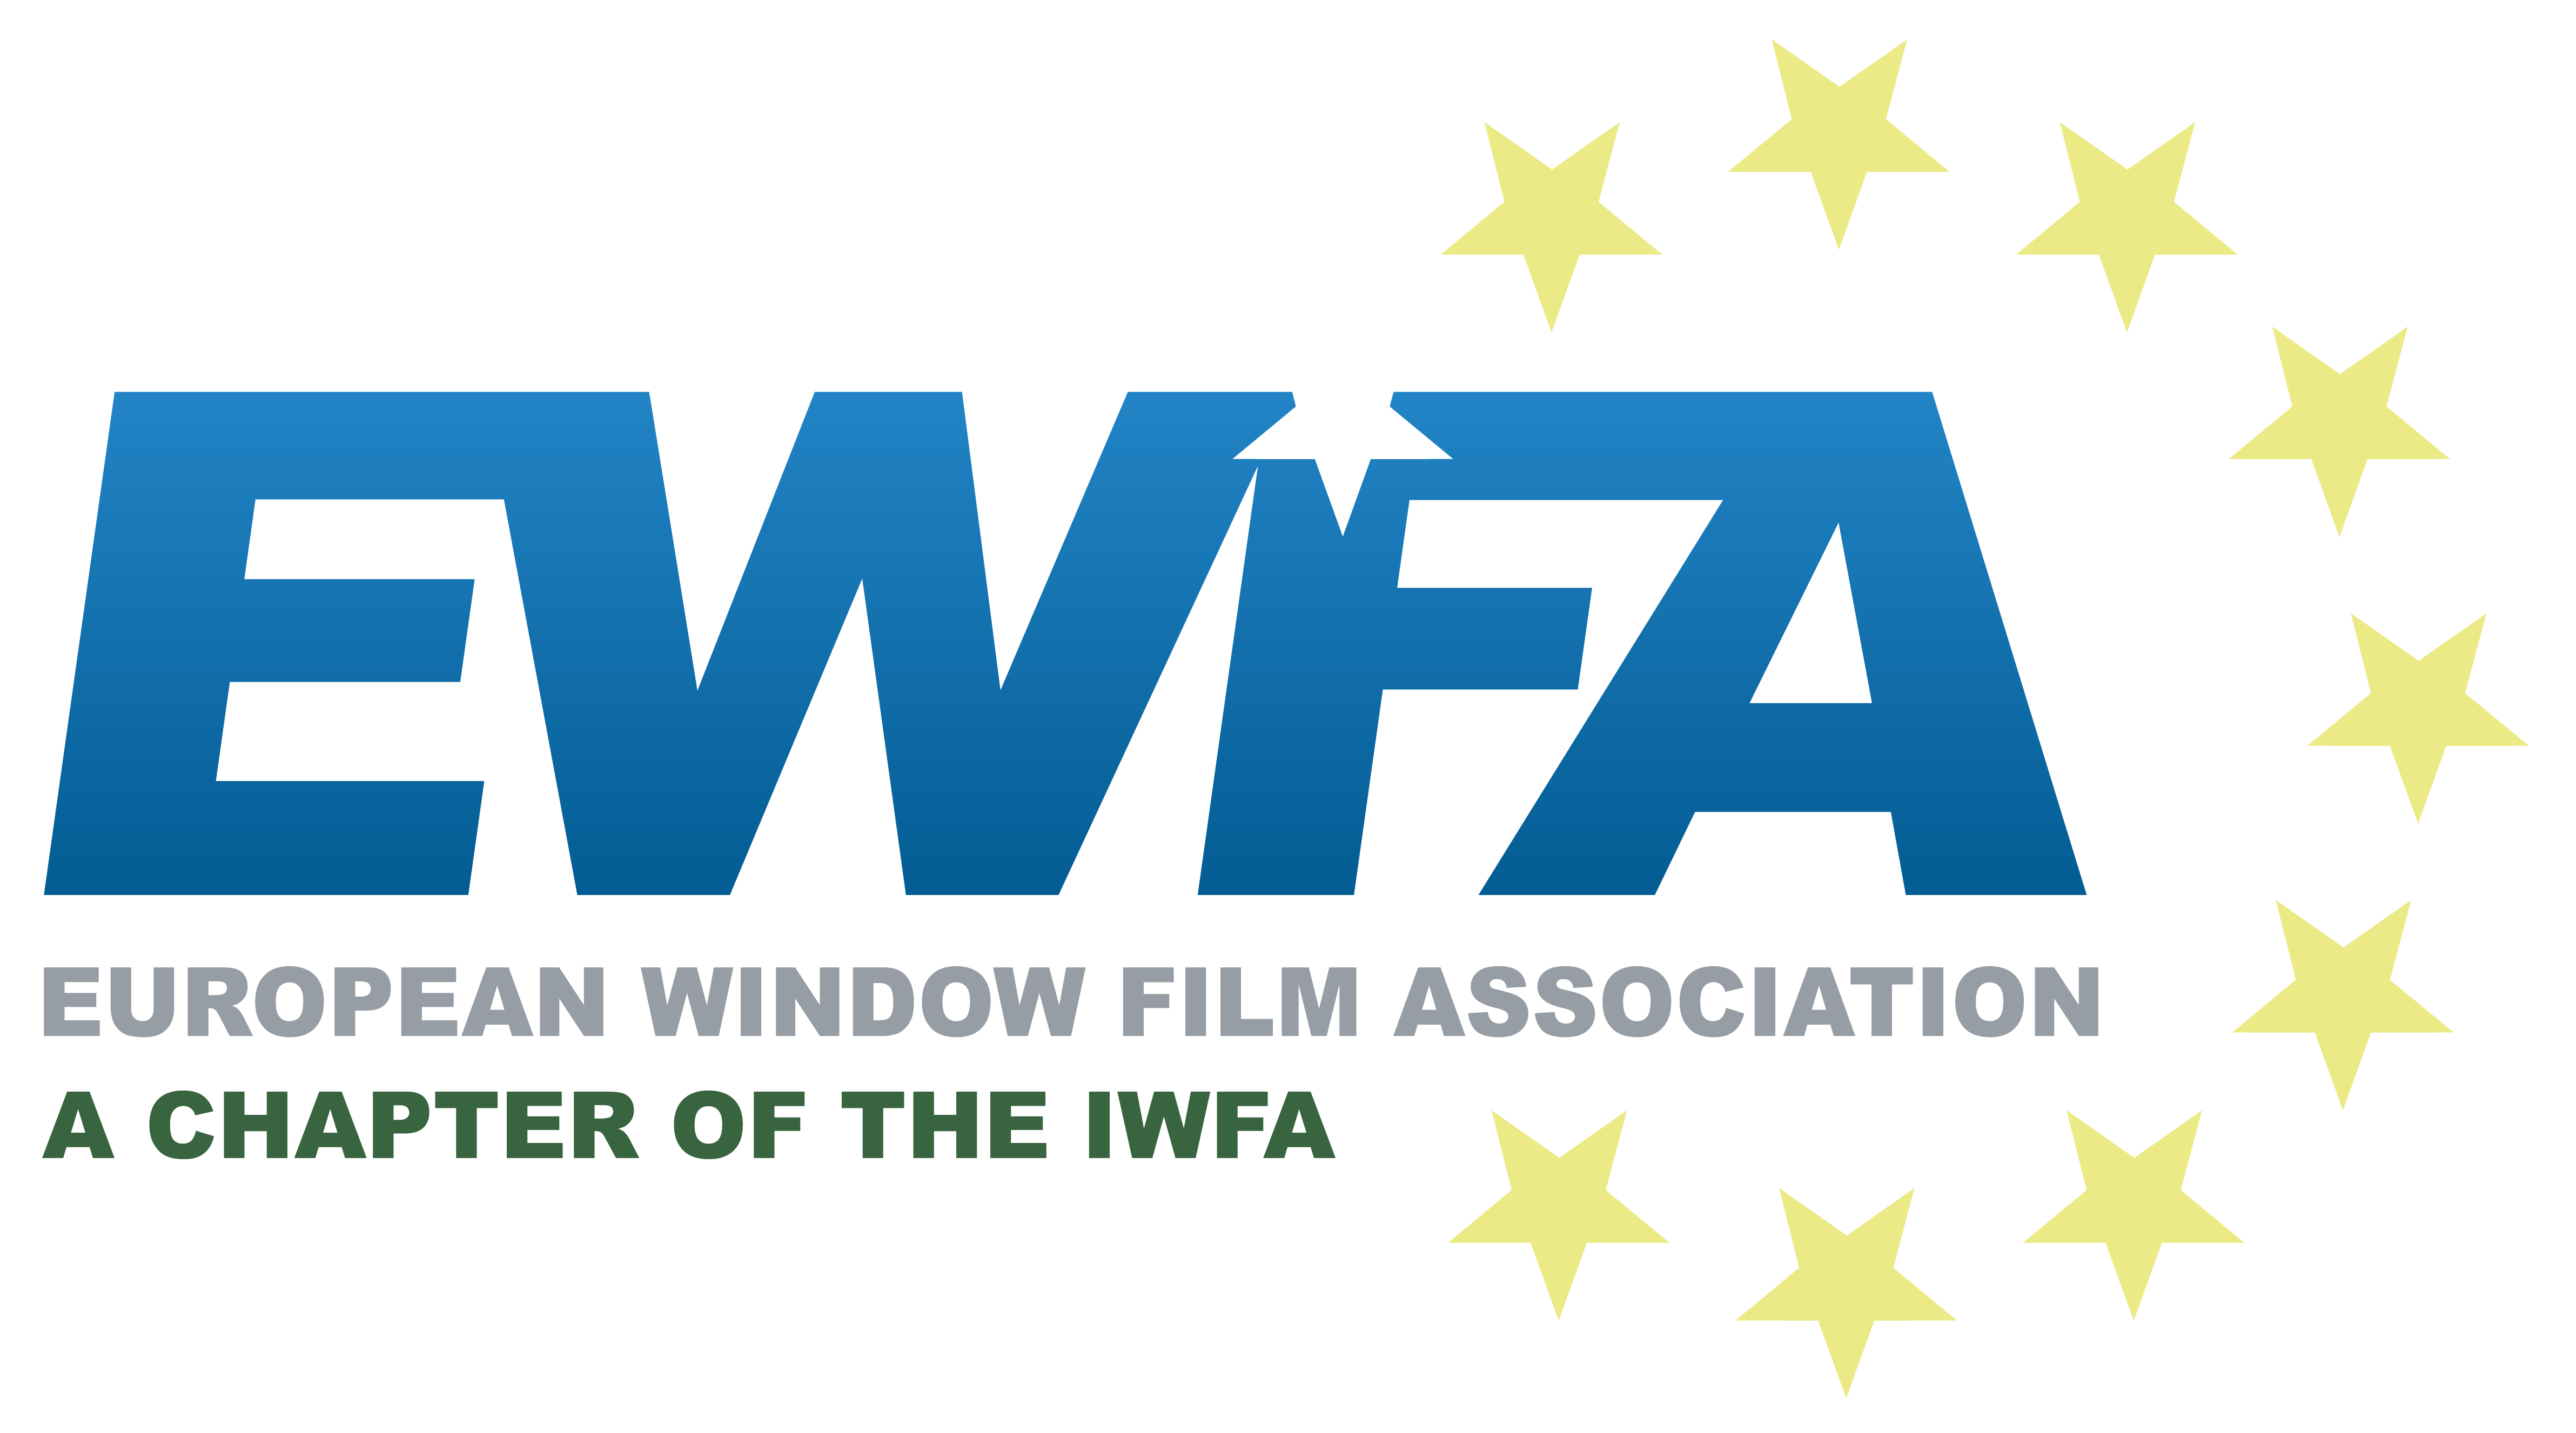 EWFA 2021 Annual Membership Meeting